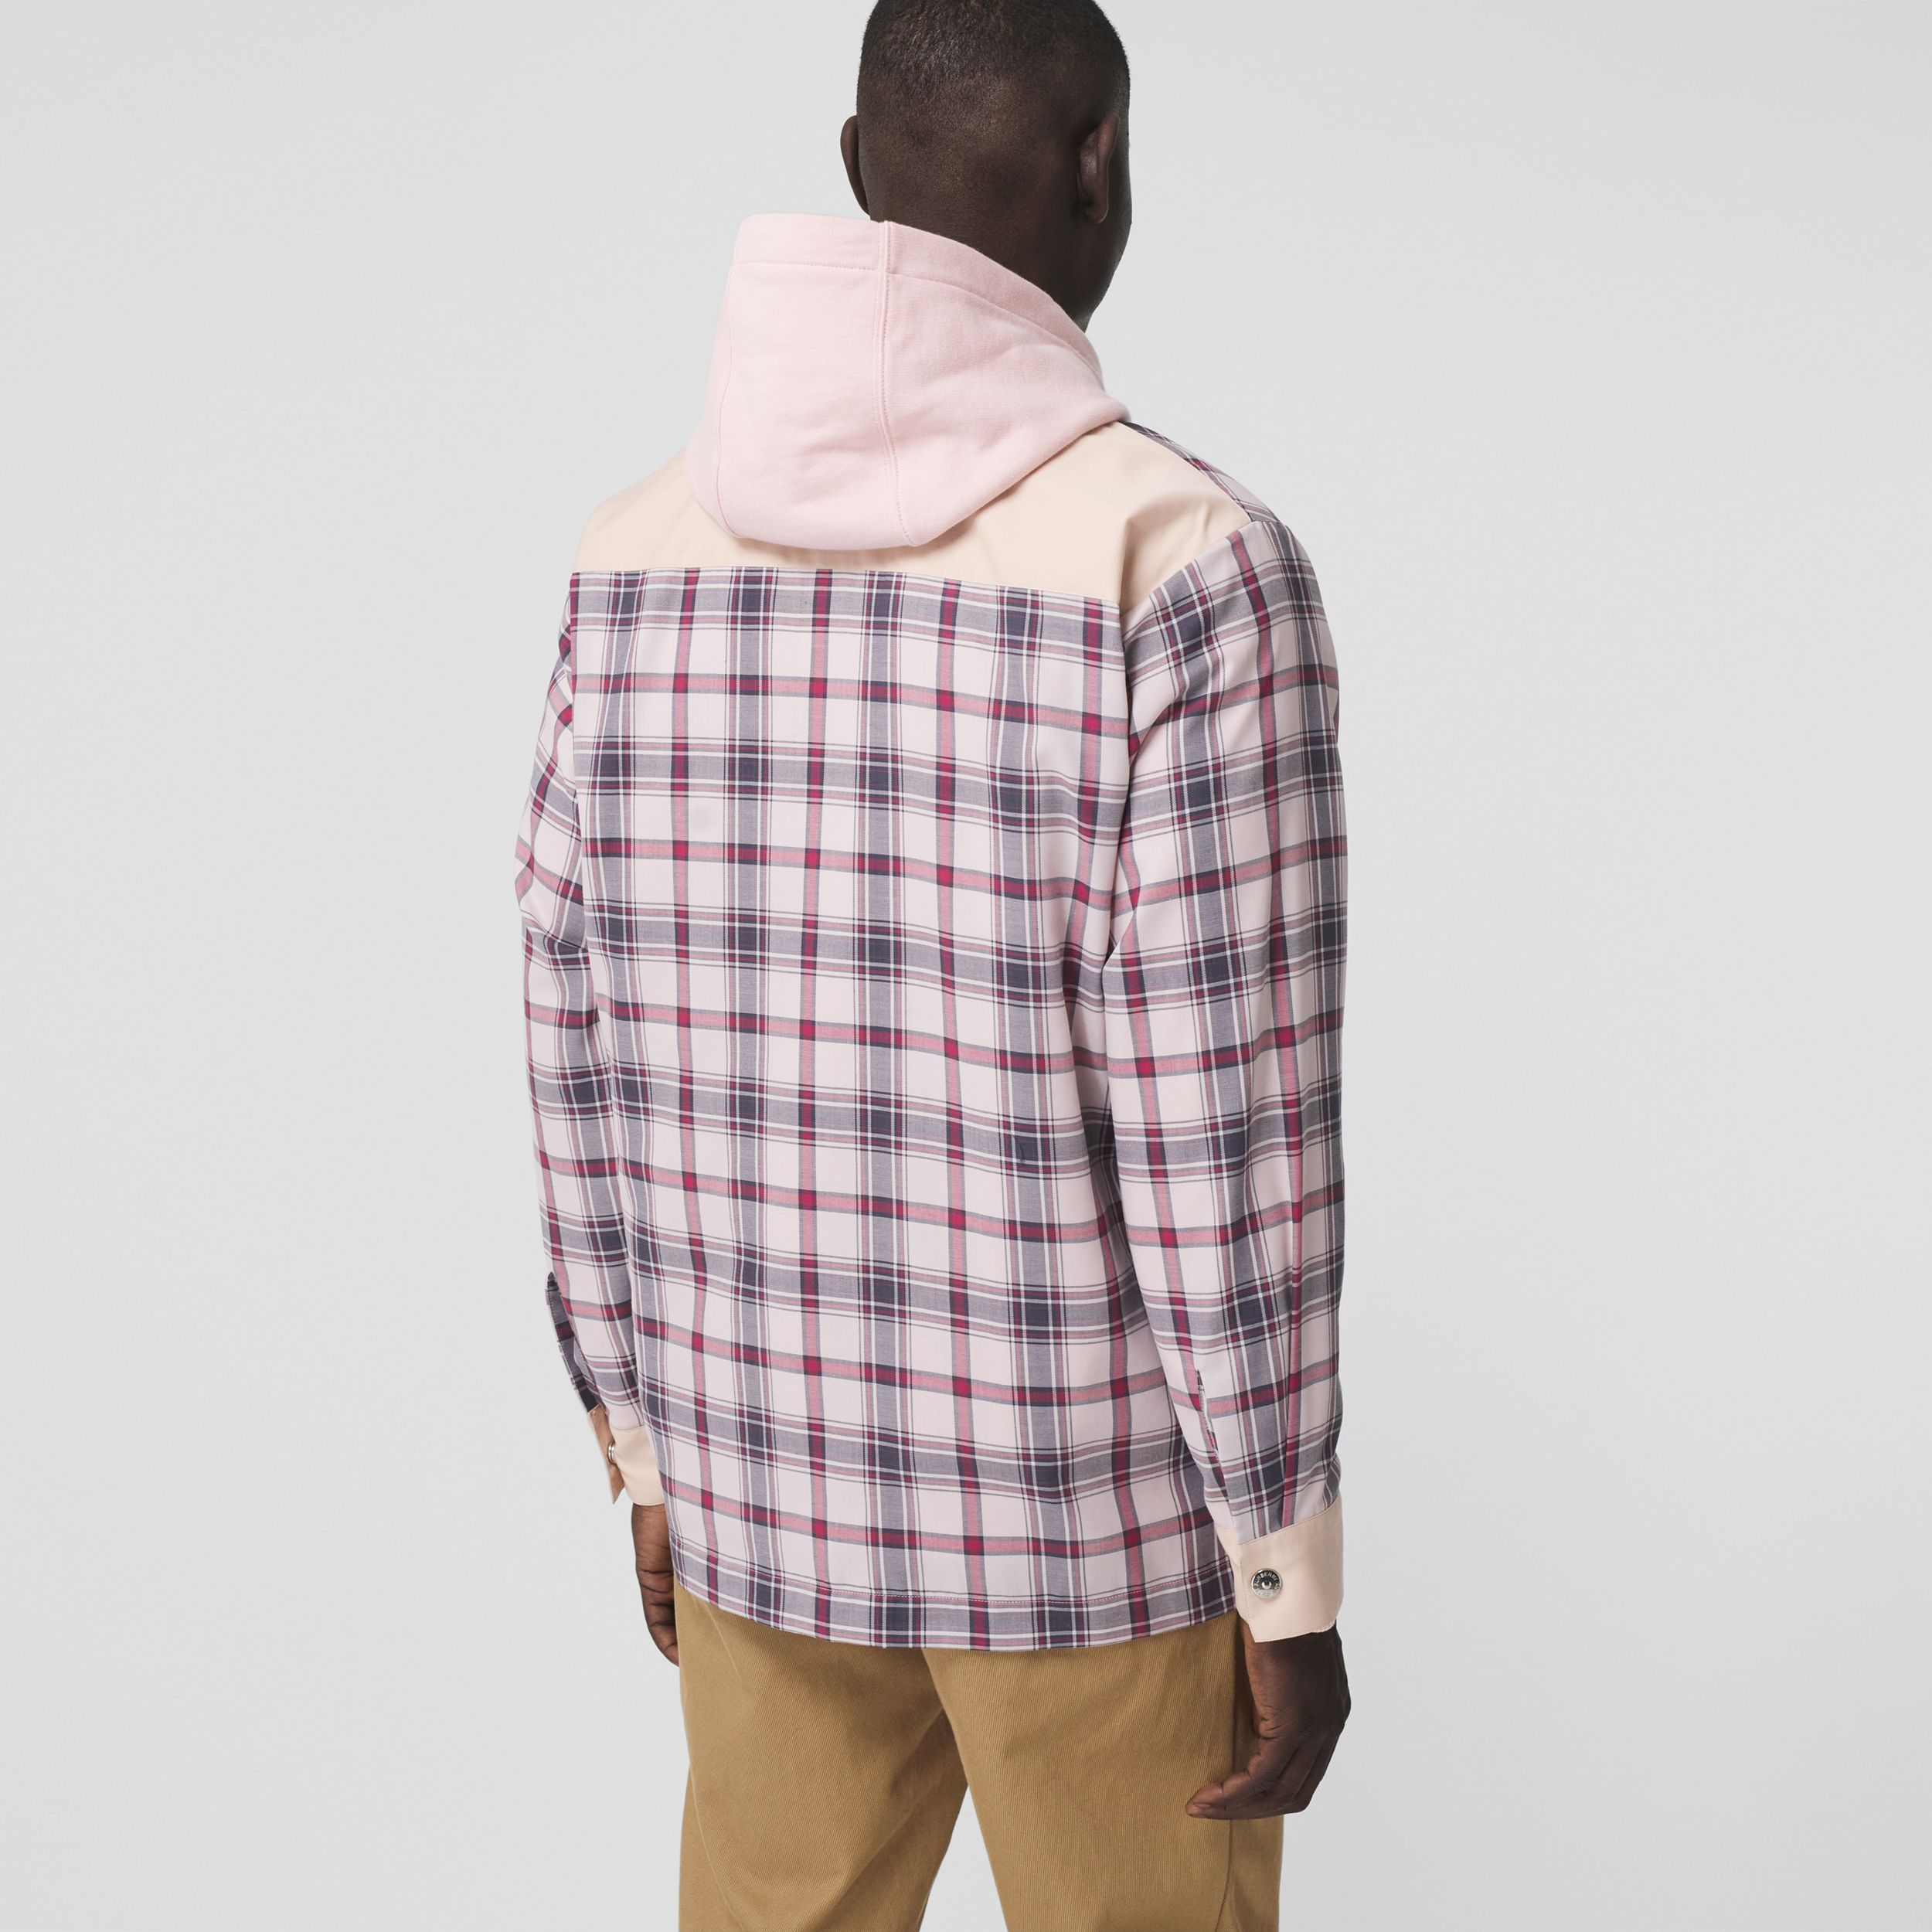 Varsity Graphic Check Technical Cotton Overshirt in Frosted Pink - Men | Burberry - 3